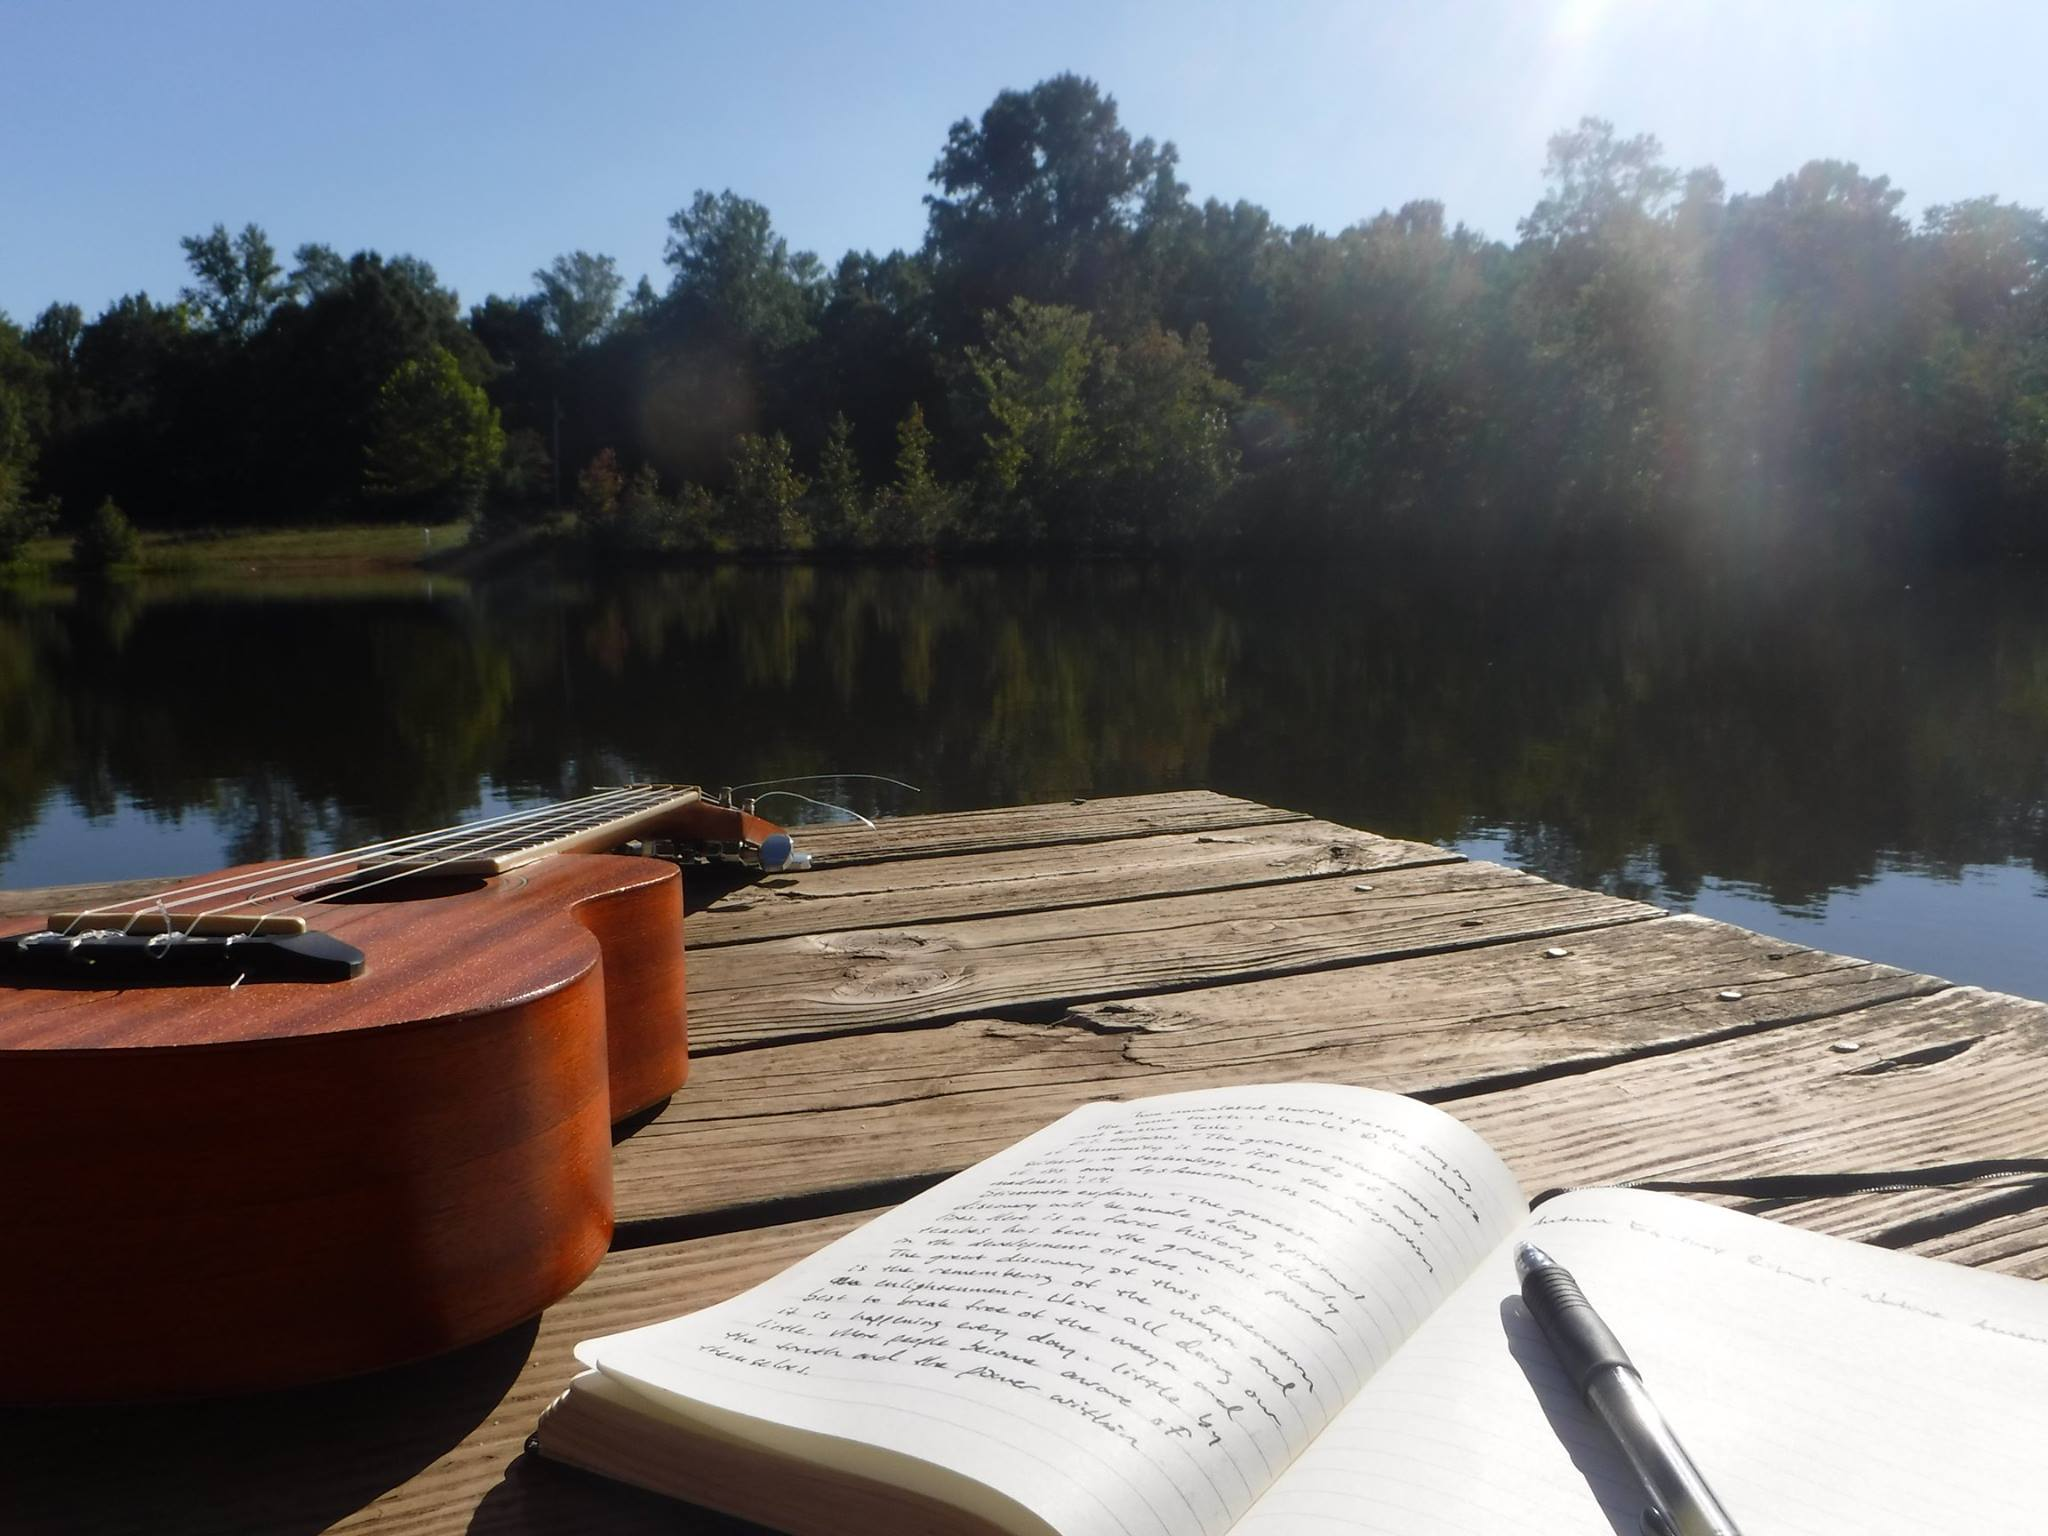 odyssey fellows - guitar and journal on dock.jpg